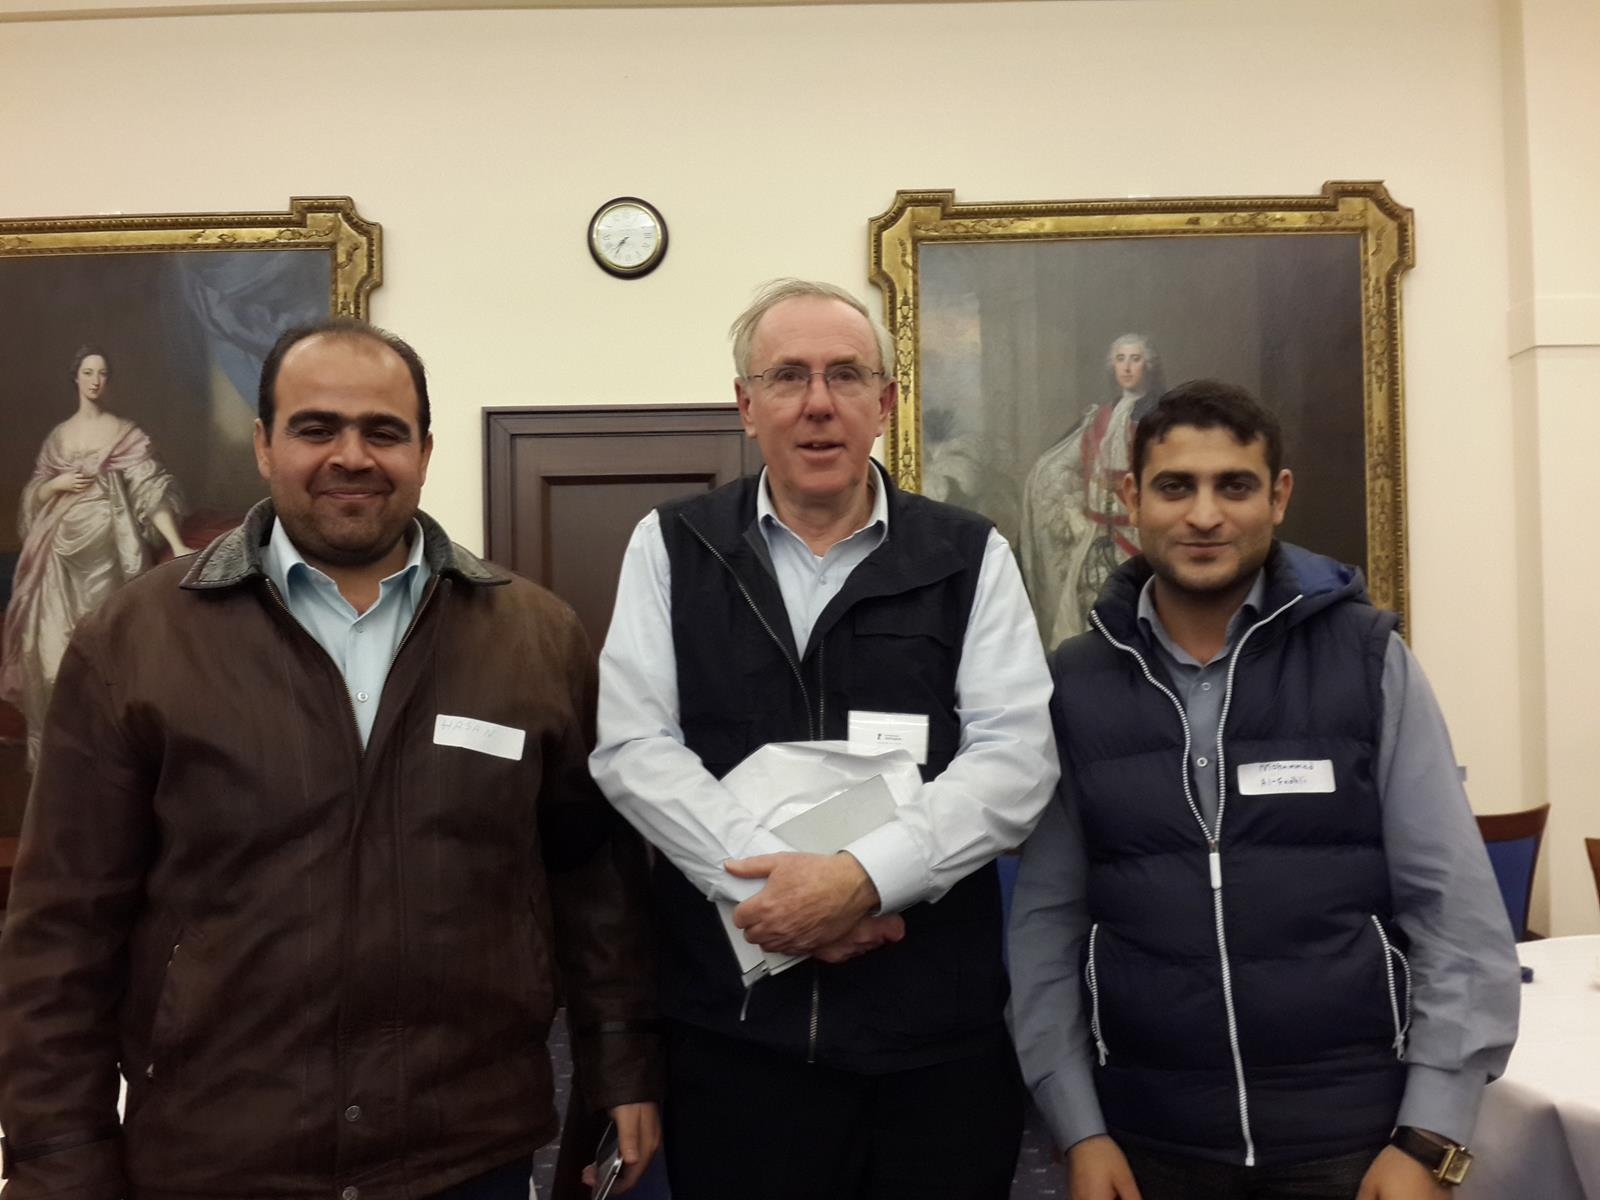 David with Hasan and Mohammed at this year's launch event